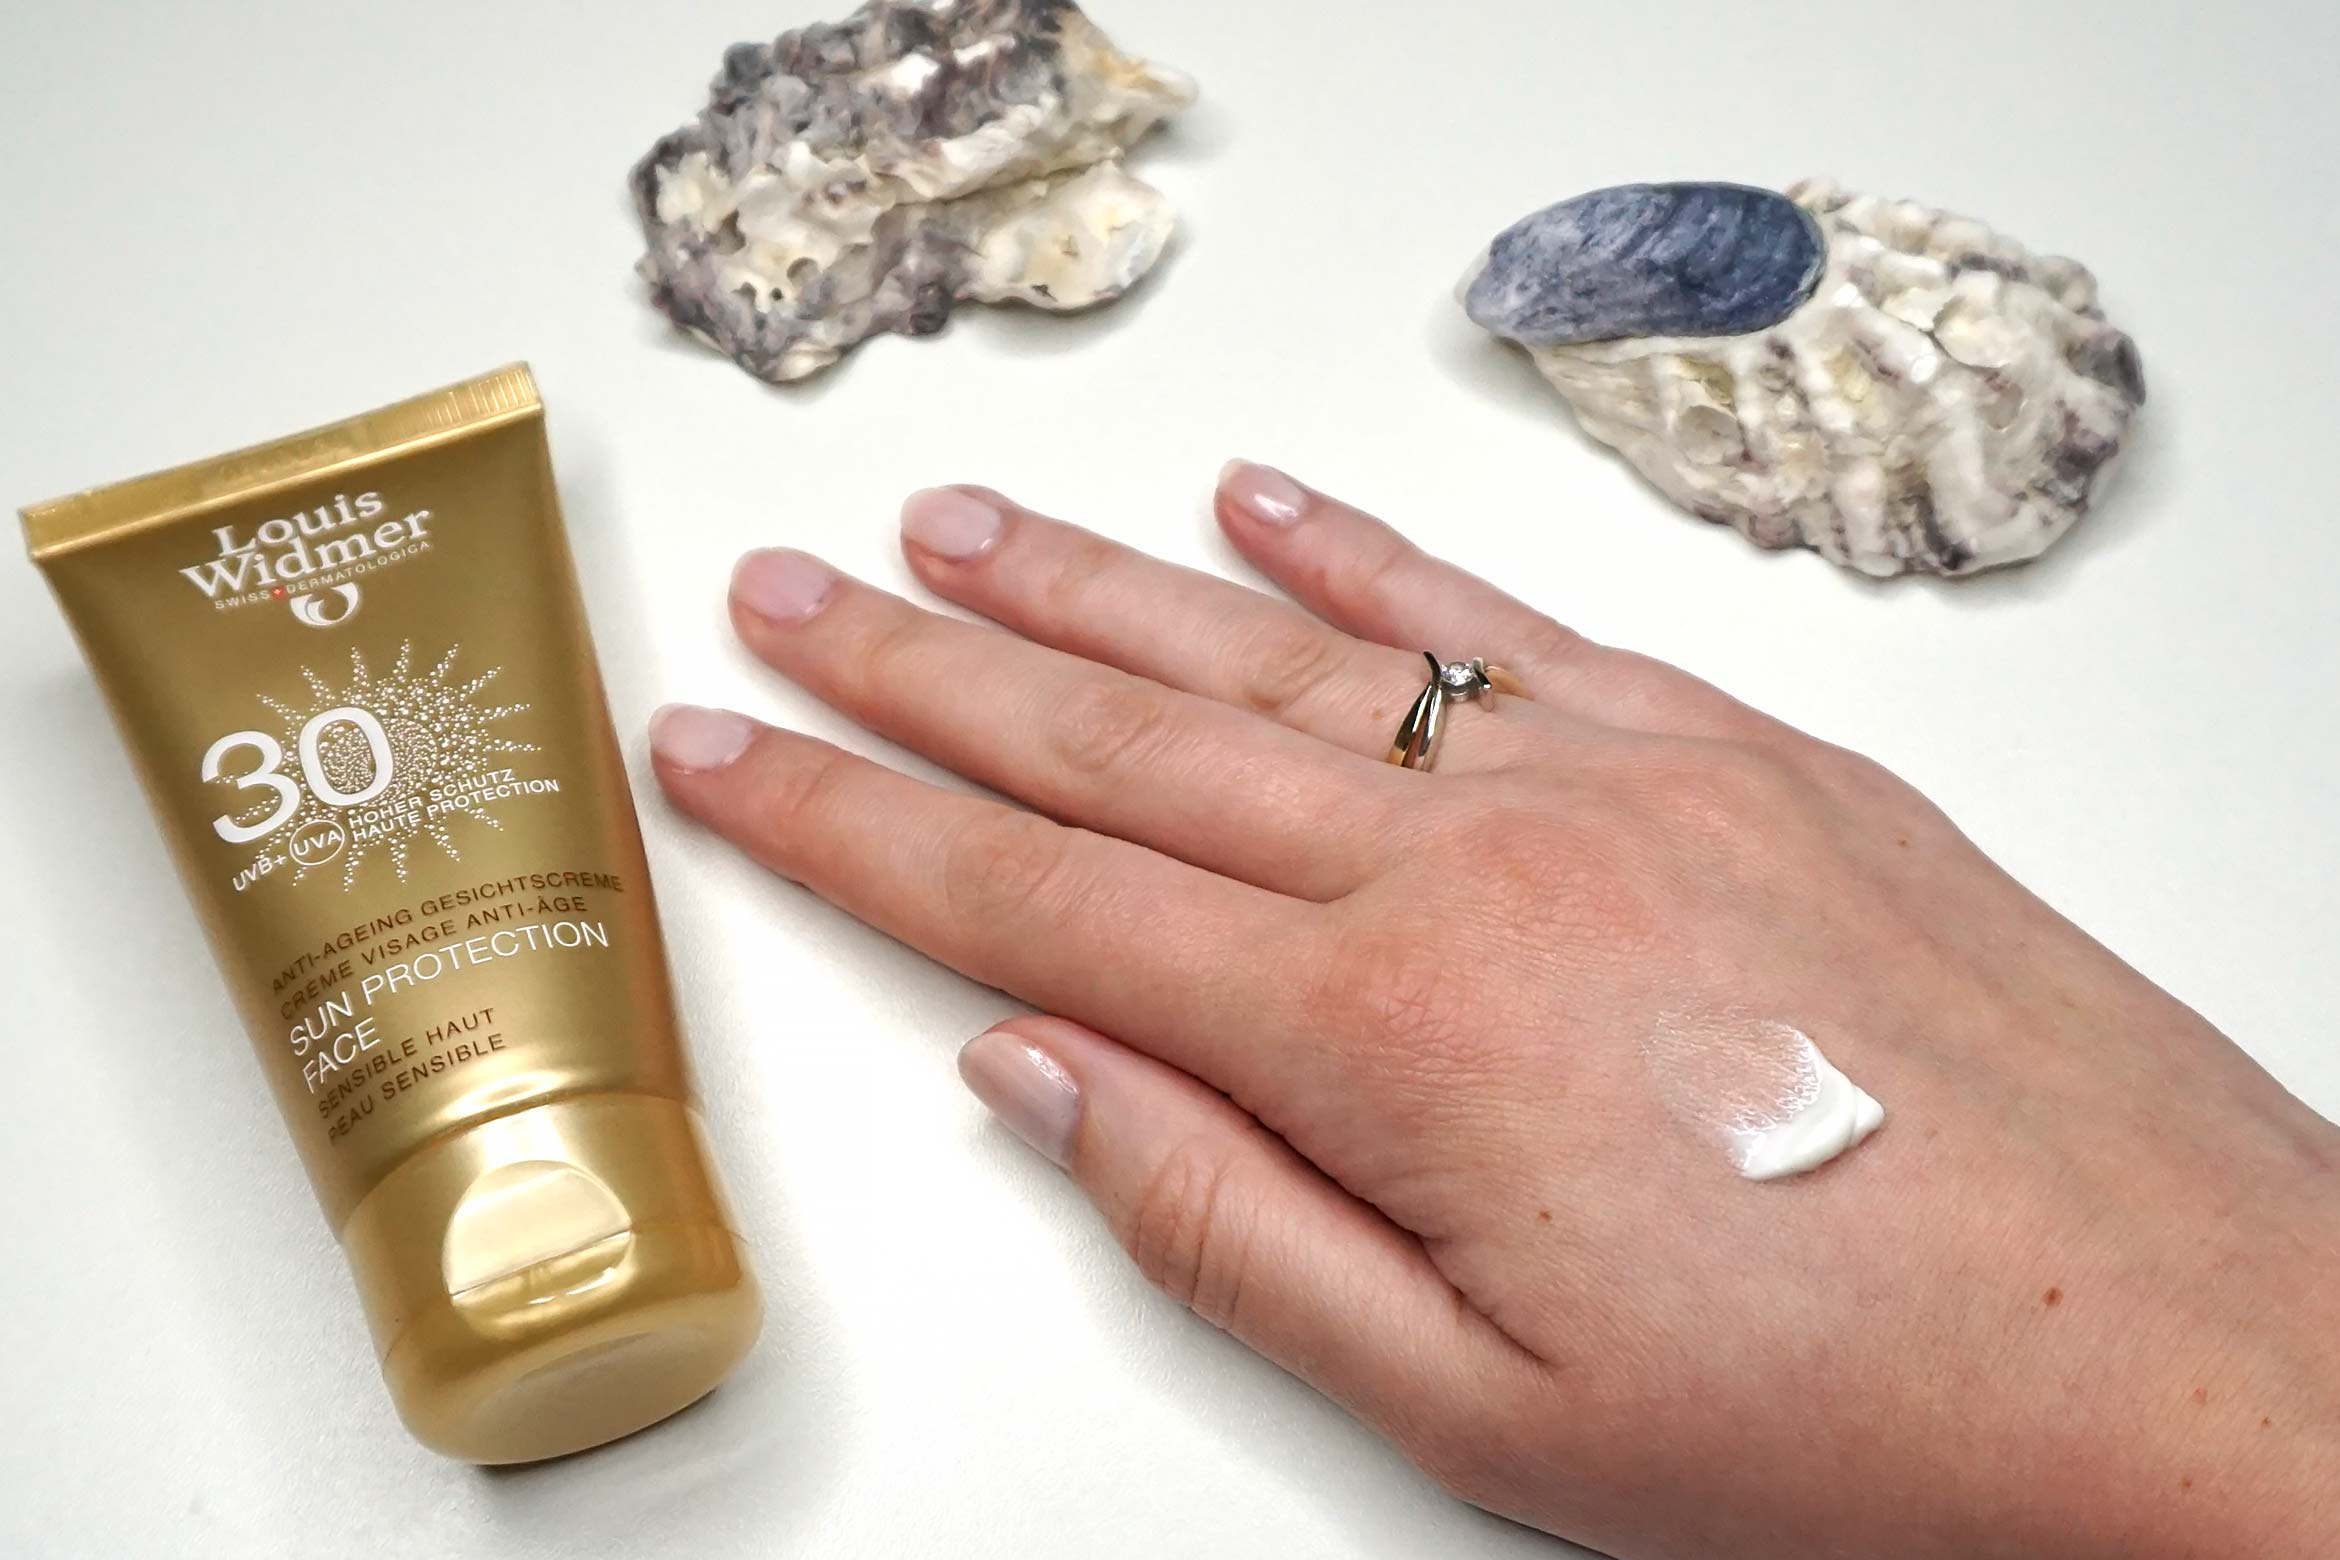 louis-widmer-sun-protection-face-review-2